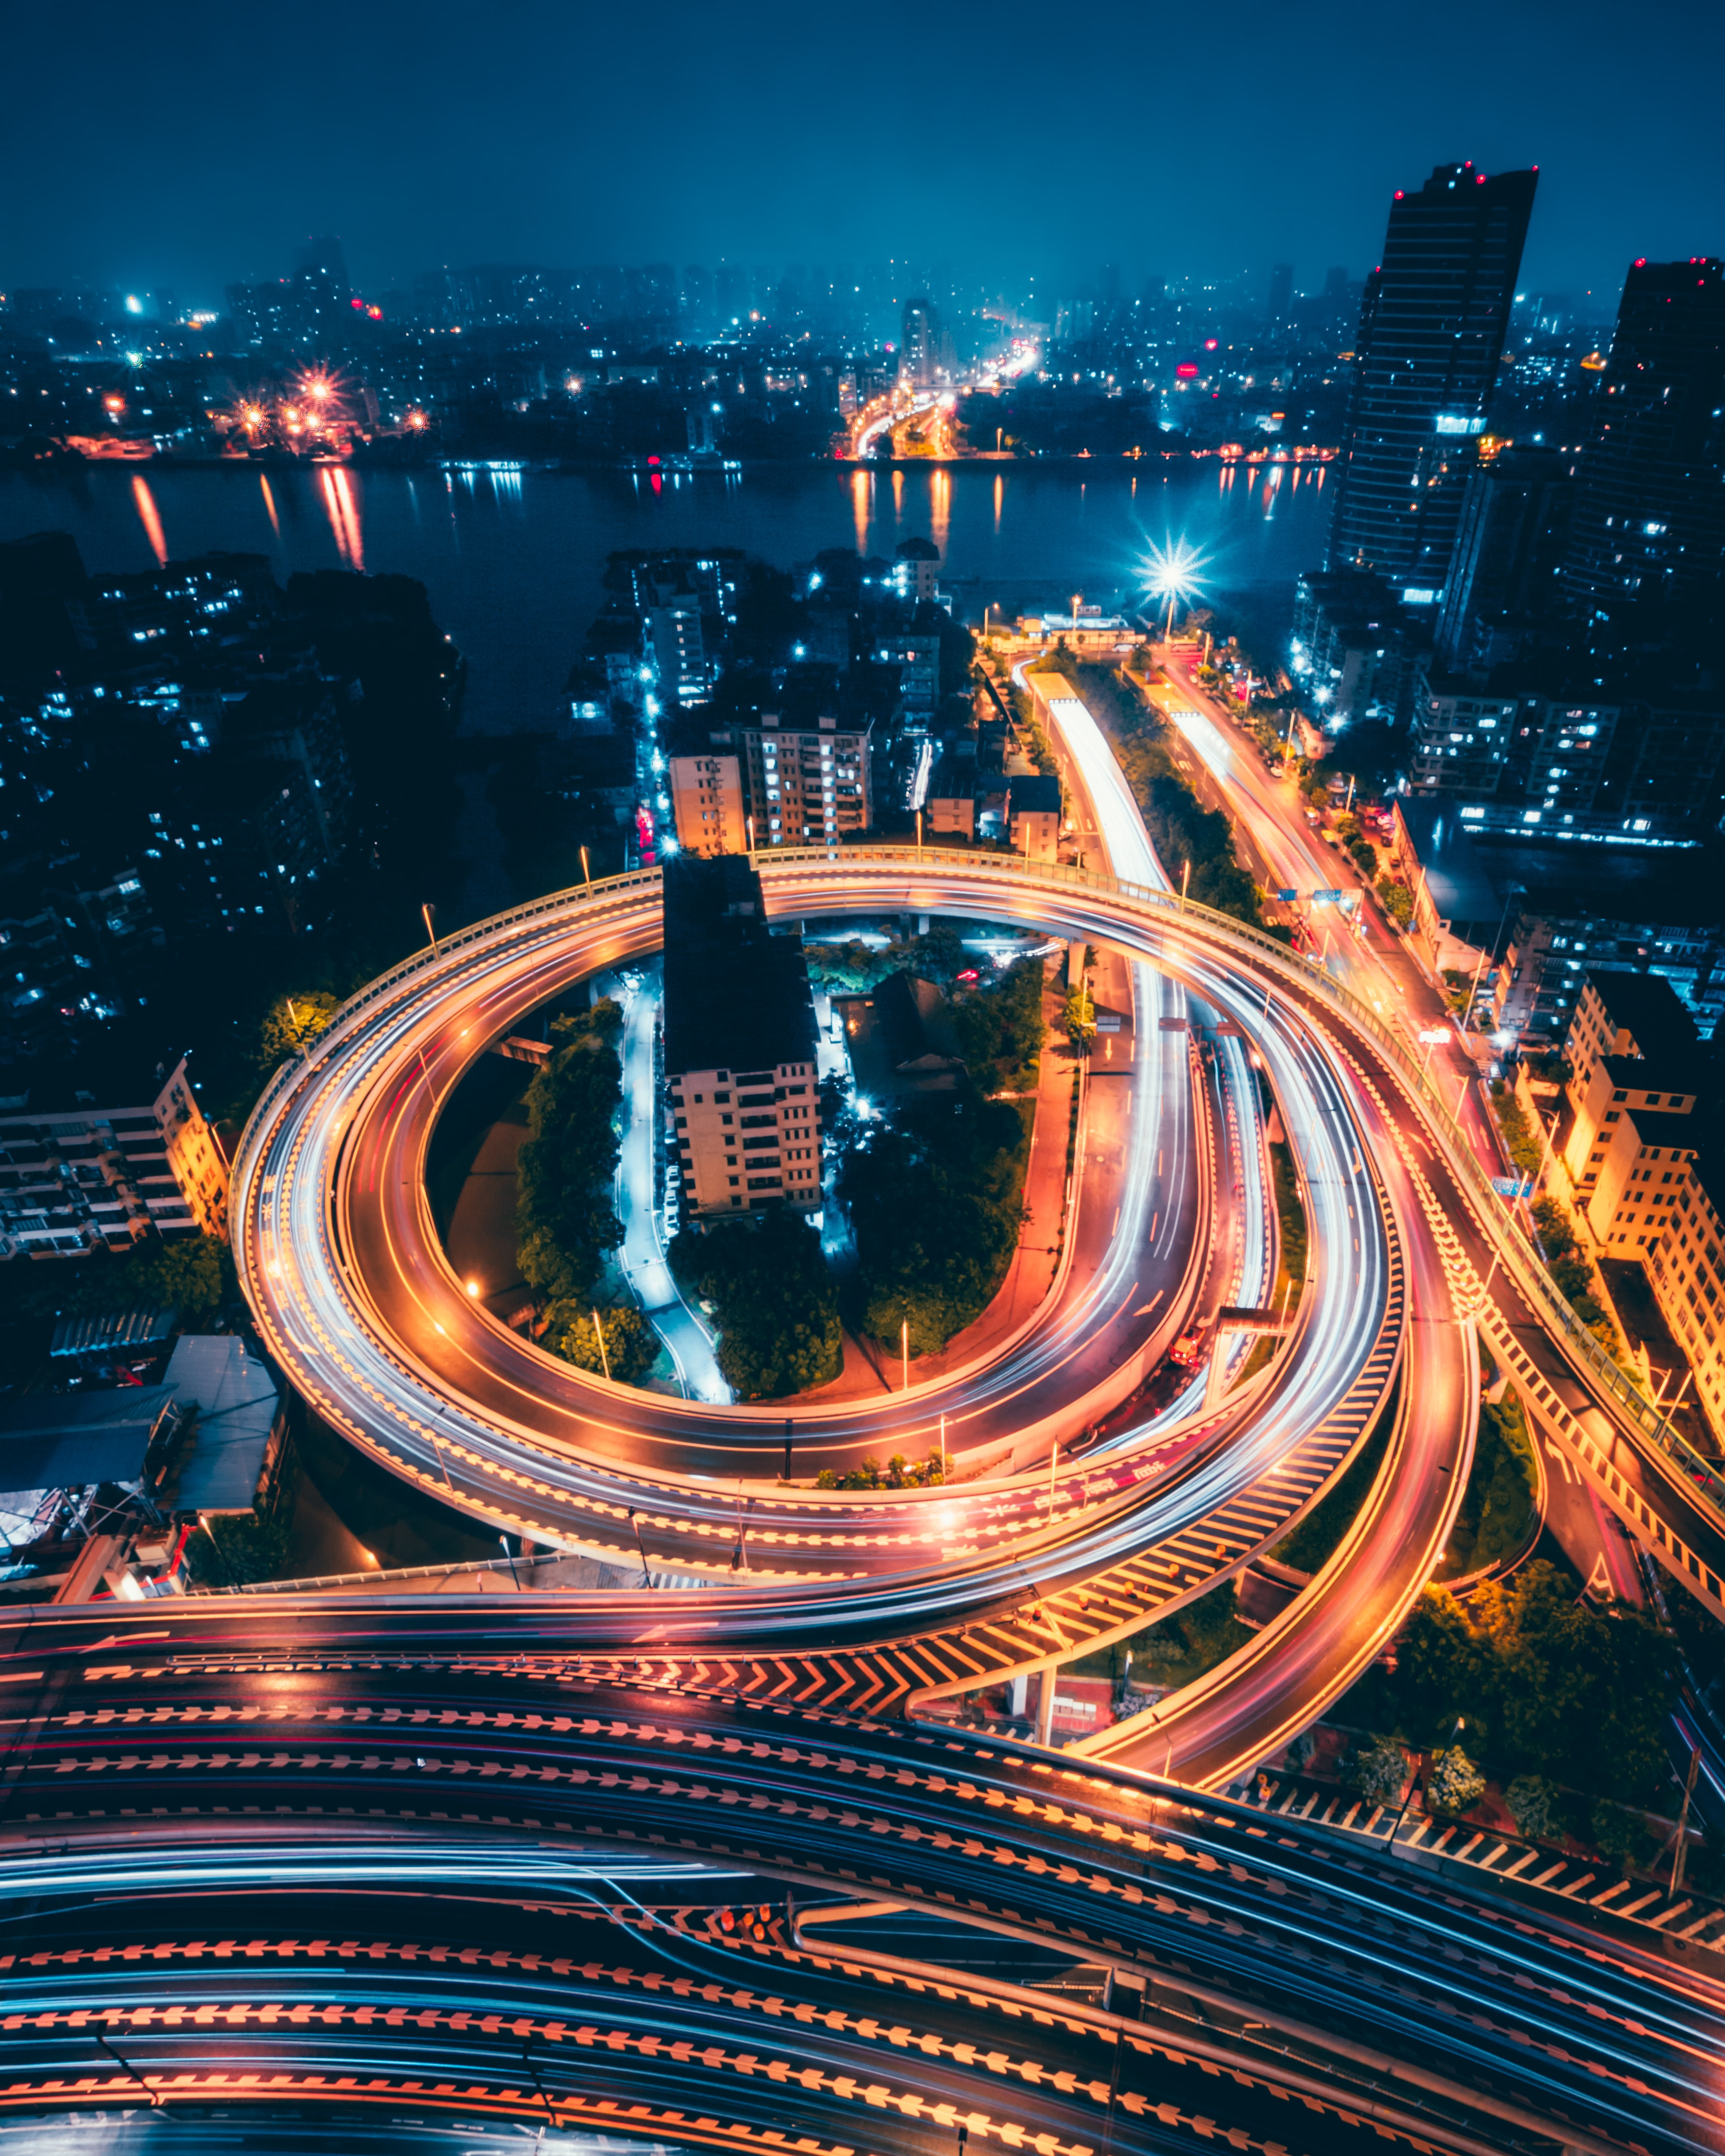 time-lapse aerial photography of city during night